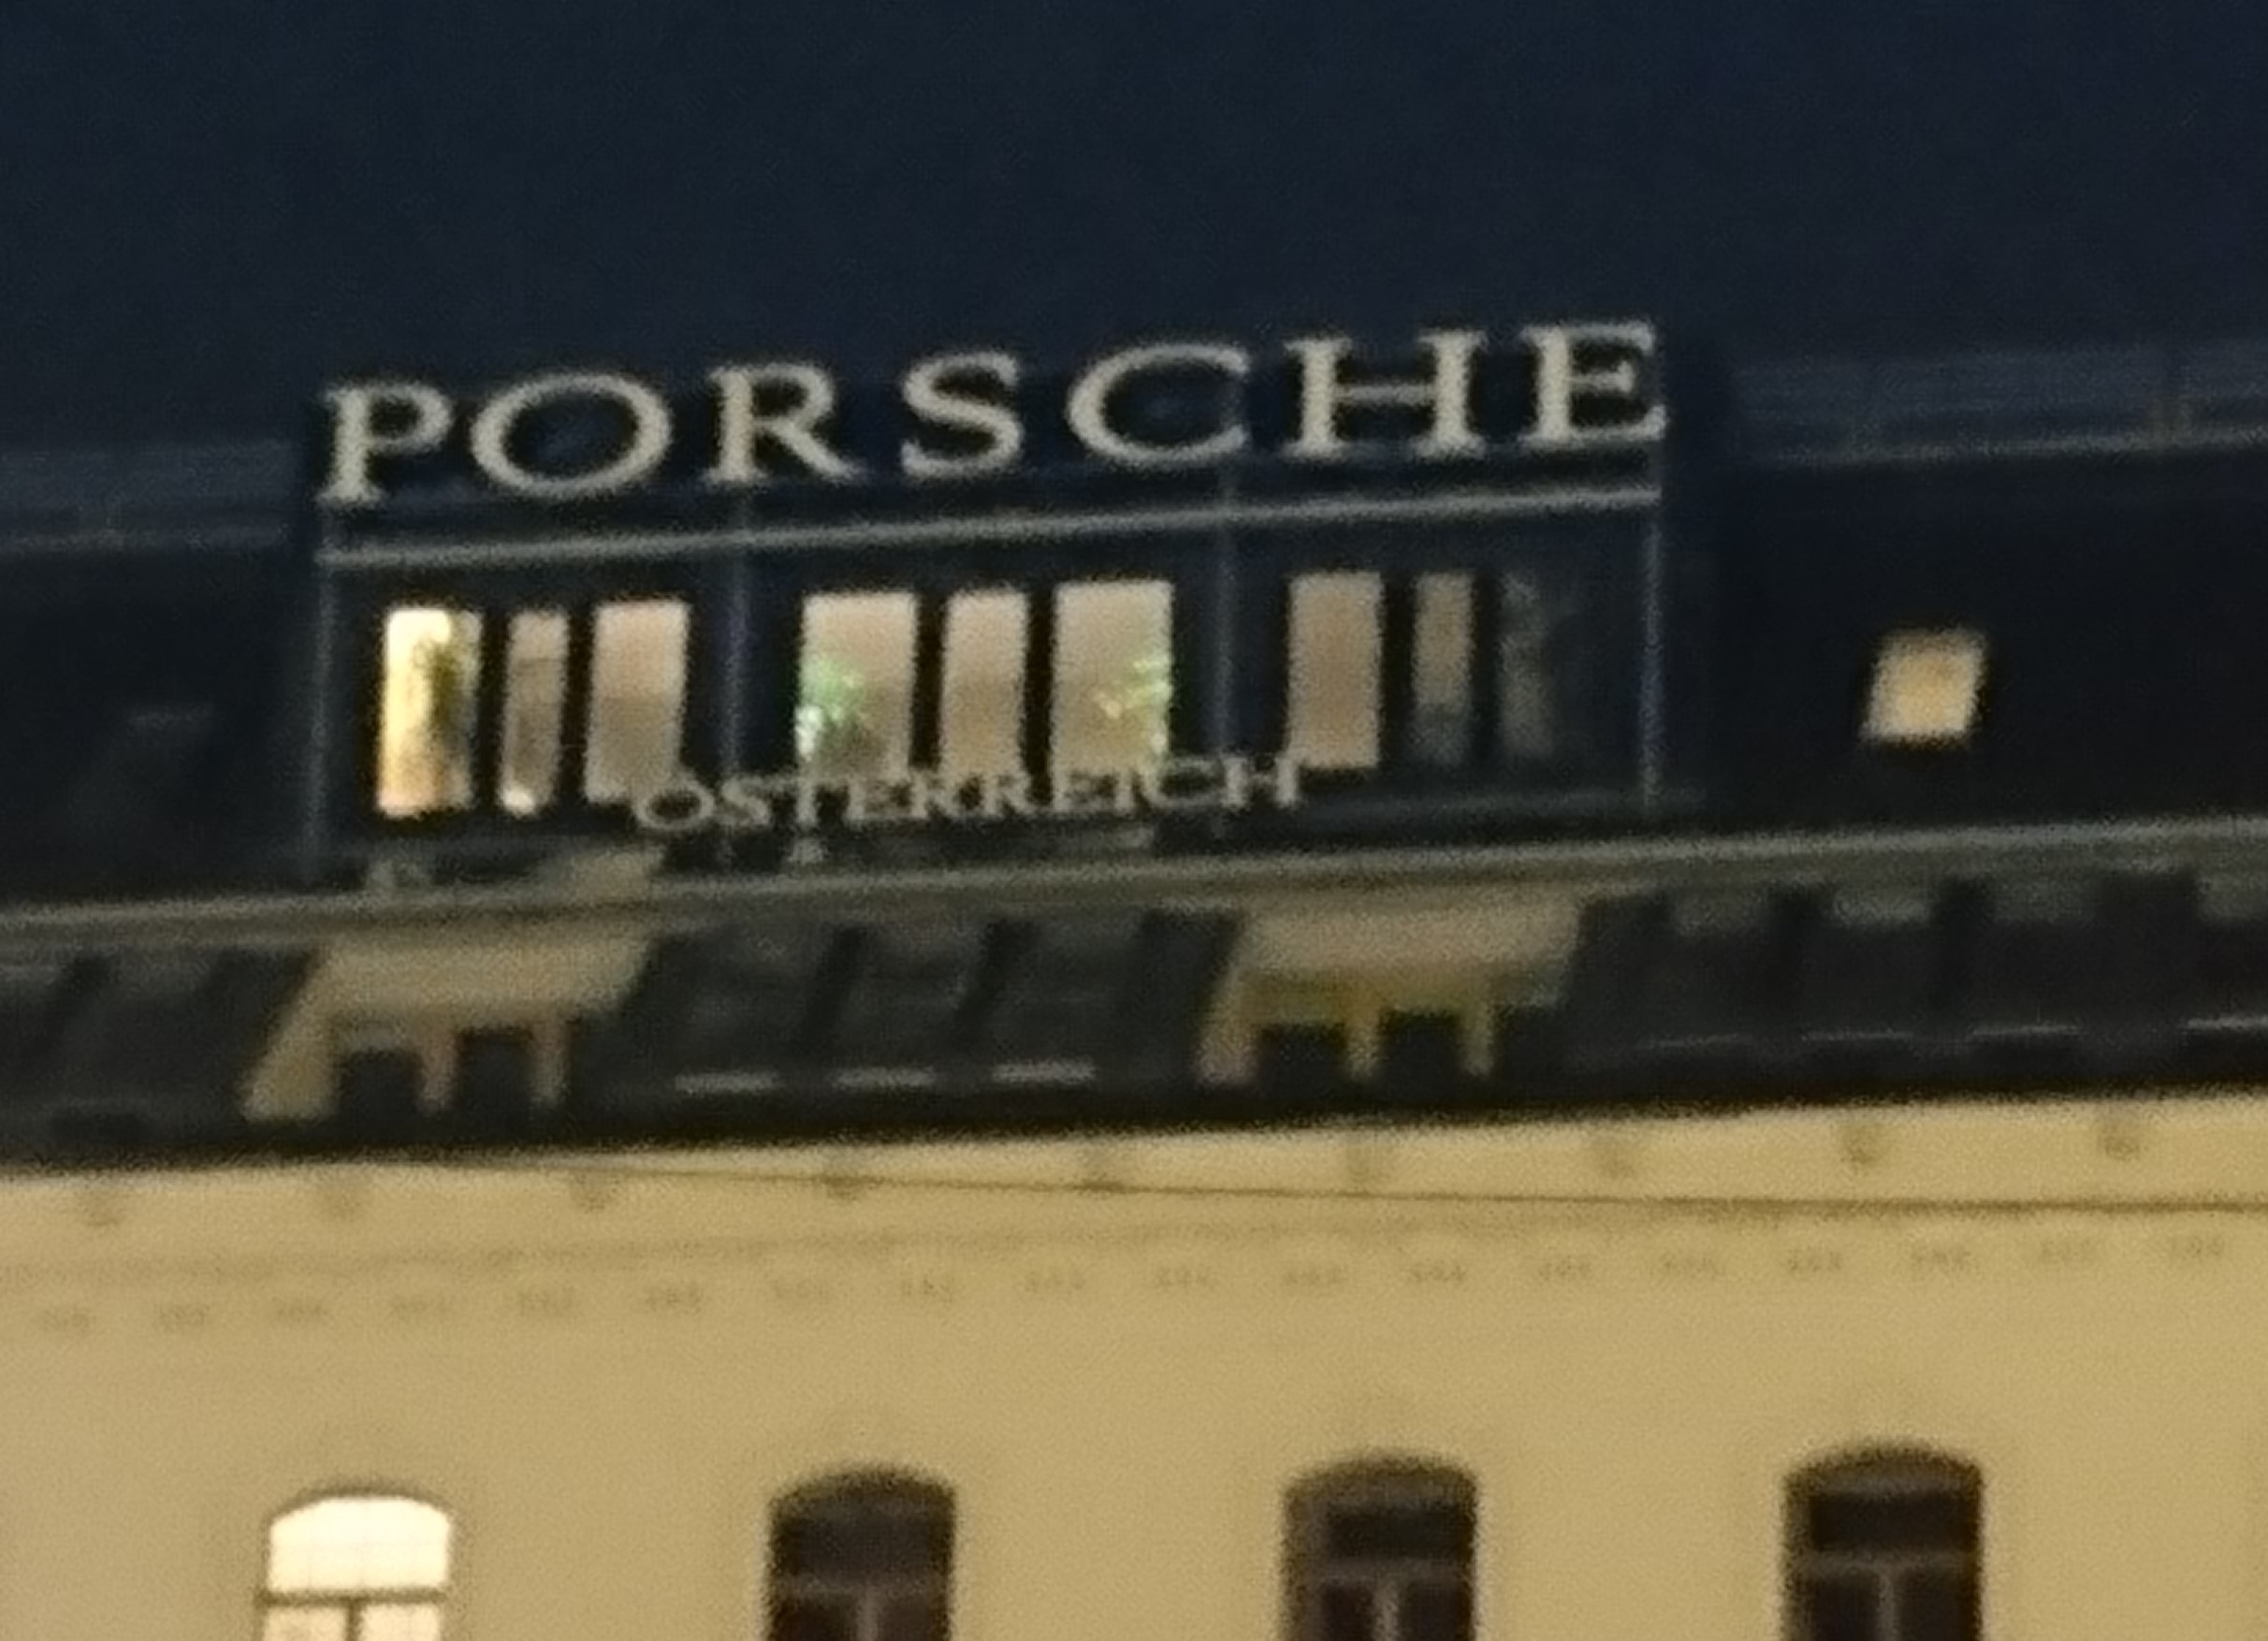 vienna porsche sign.jpg small.jpg